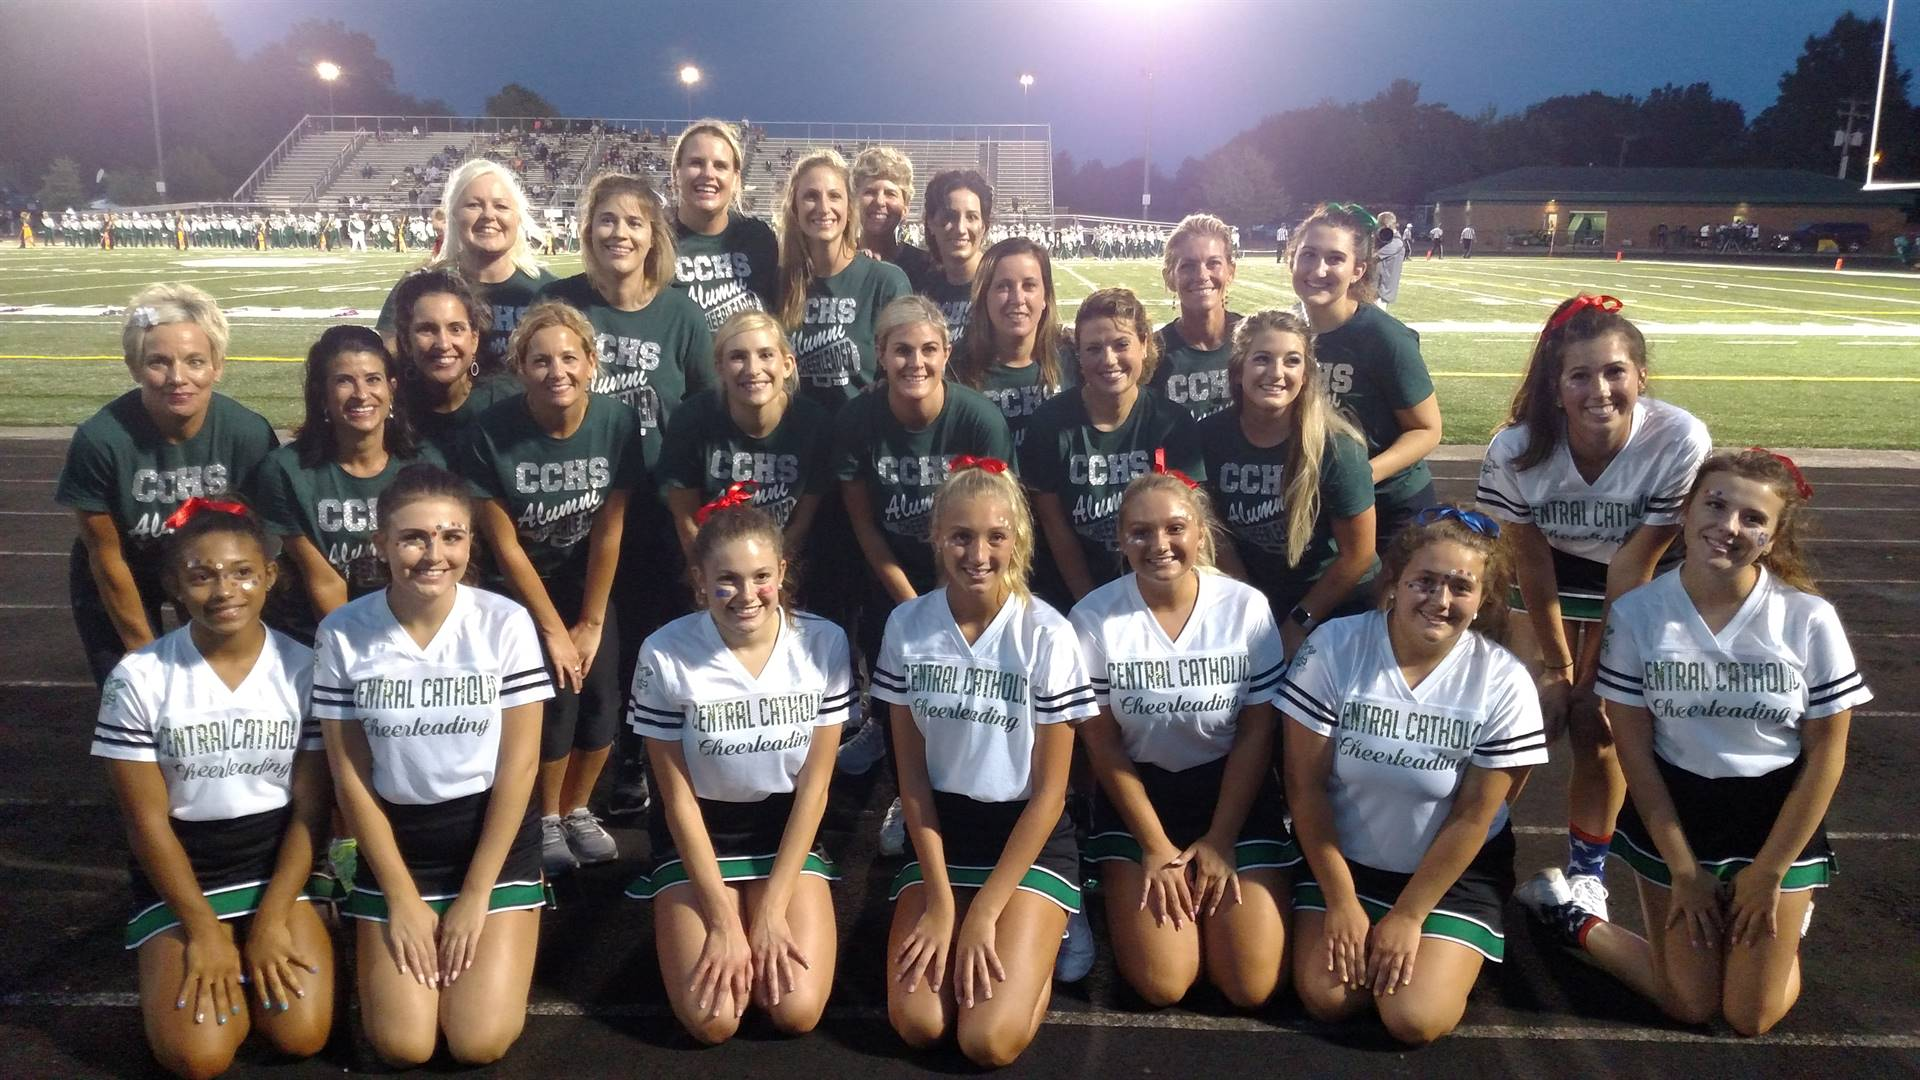 2018 Cheerleader Alumni Football Game!